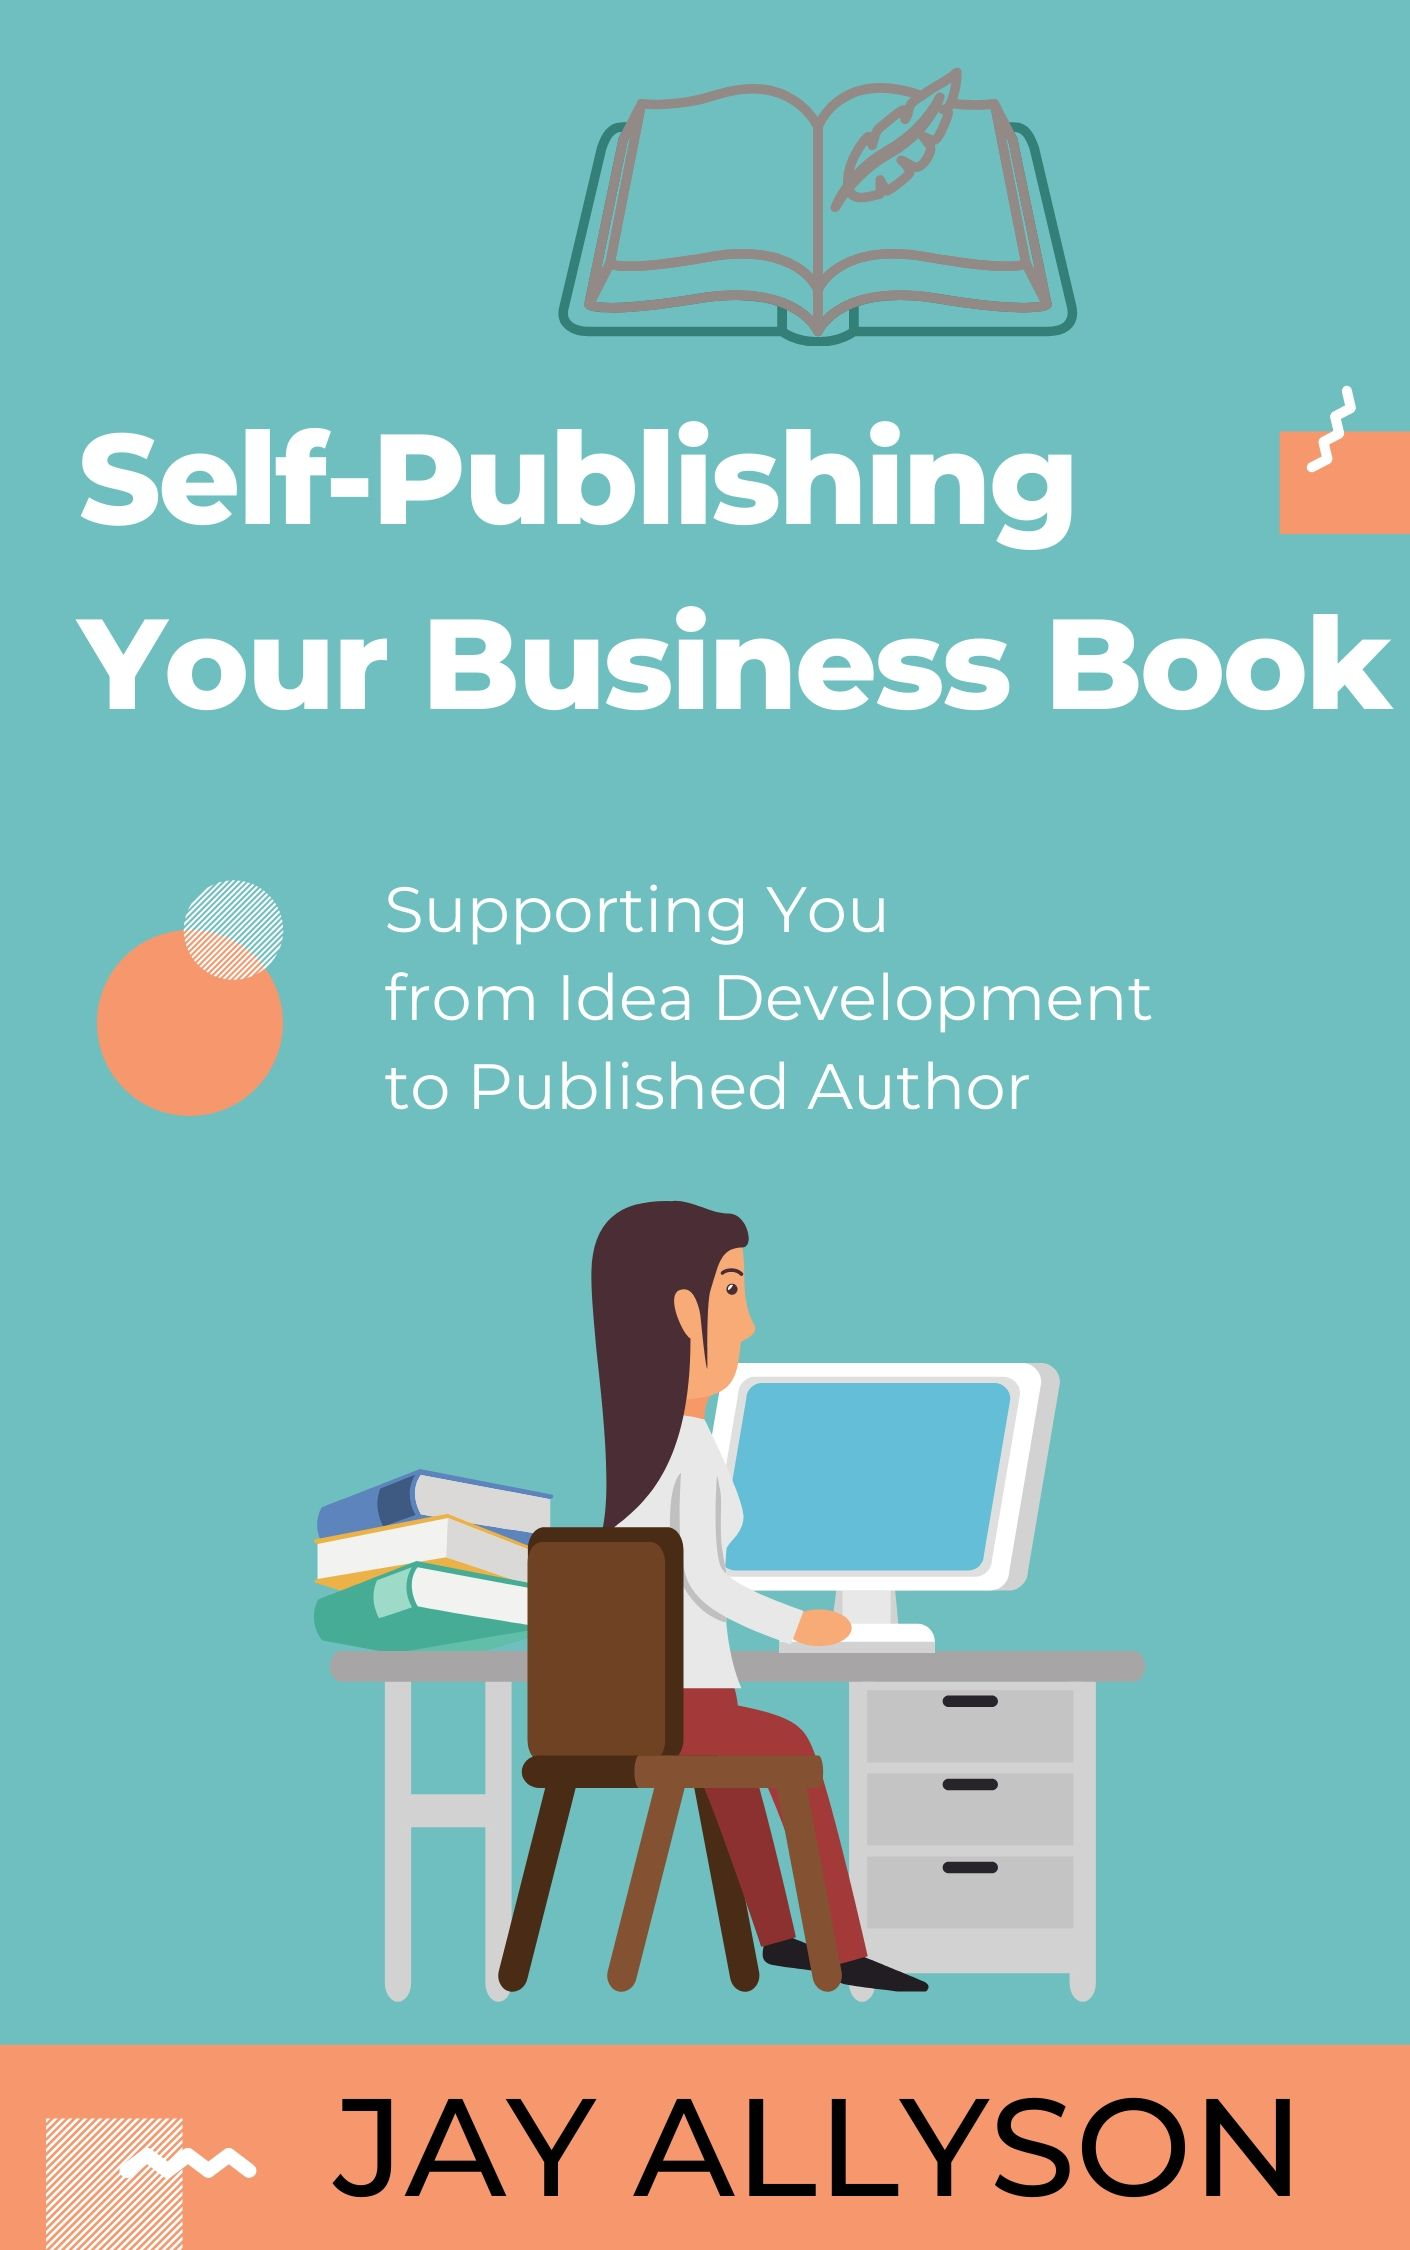 self publishing guide for business books